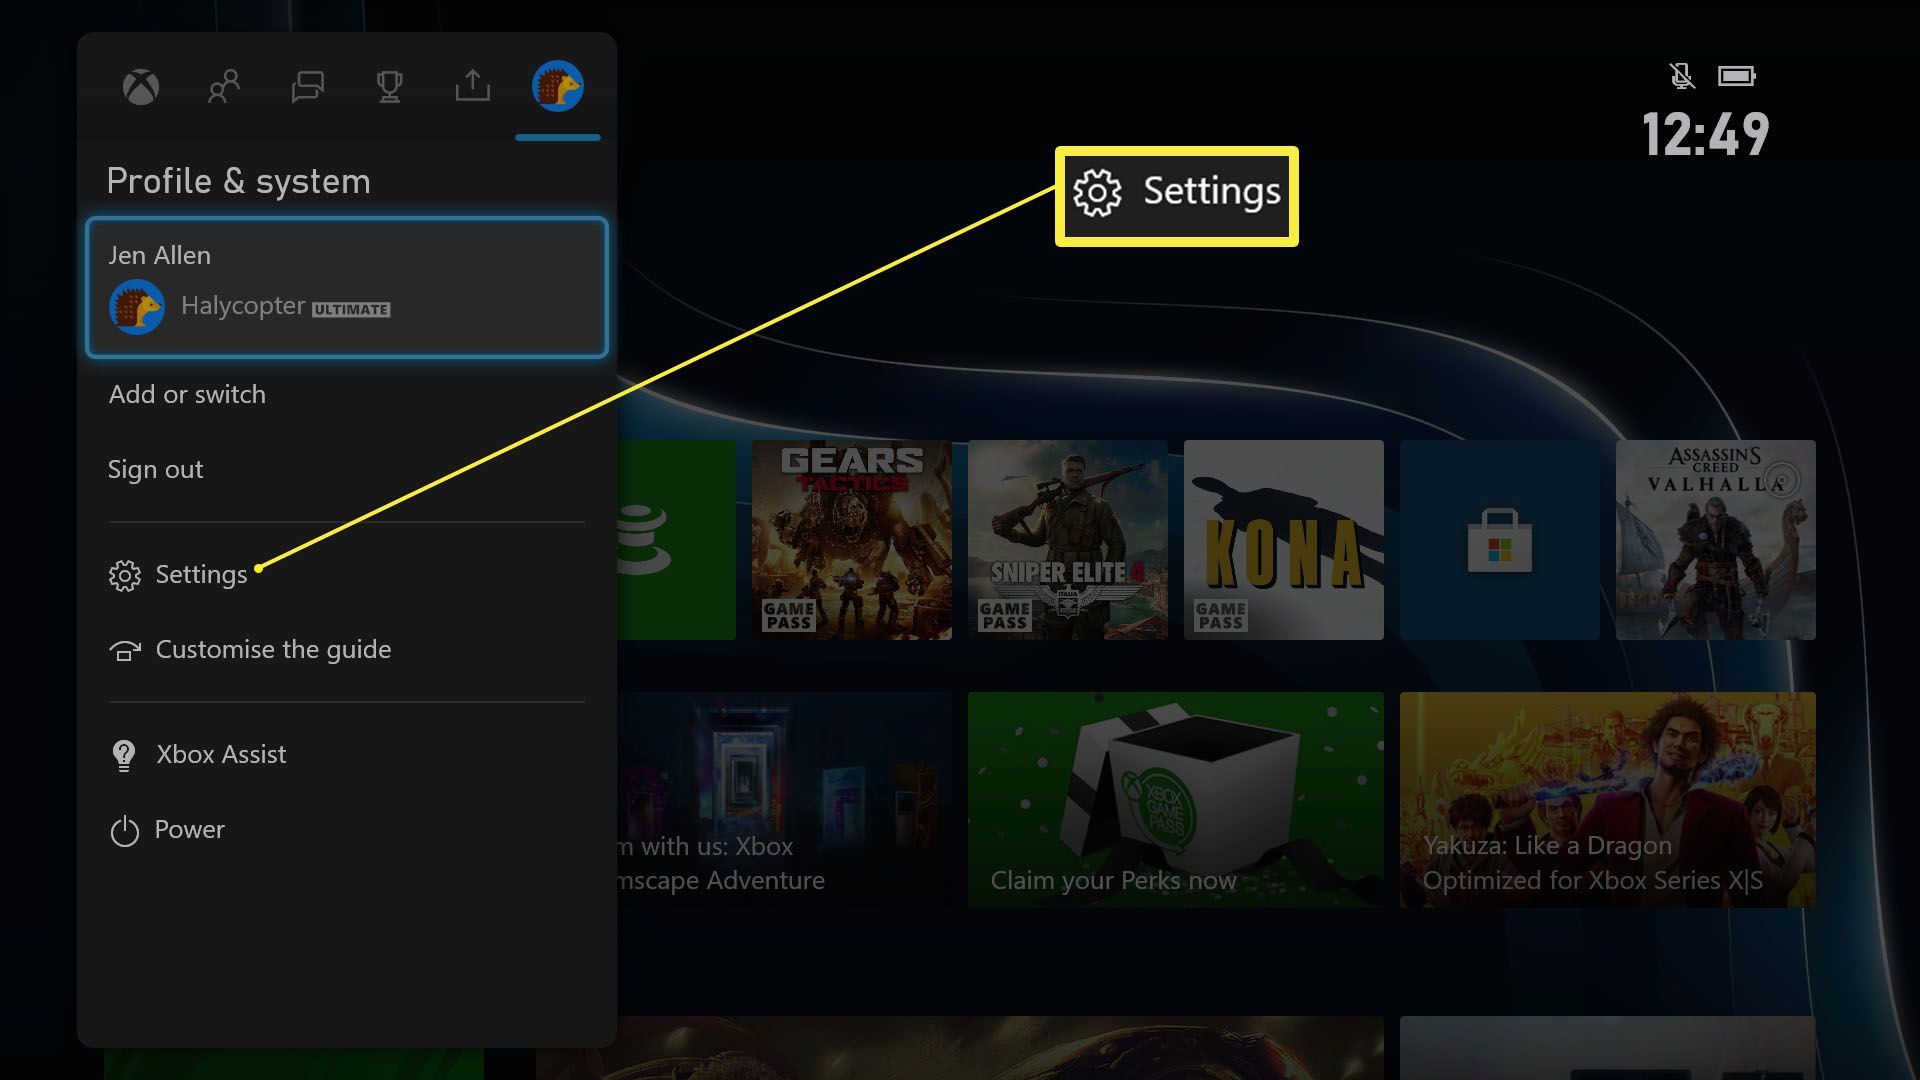 Xbox Series X/S dashboard with Settings highlighted